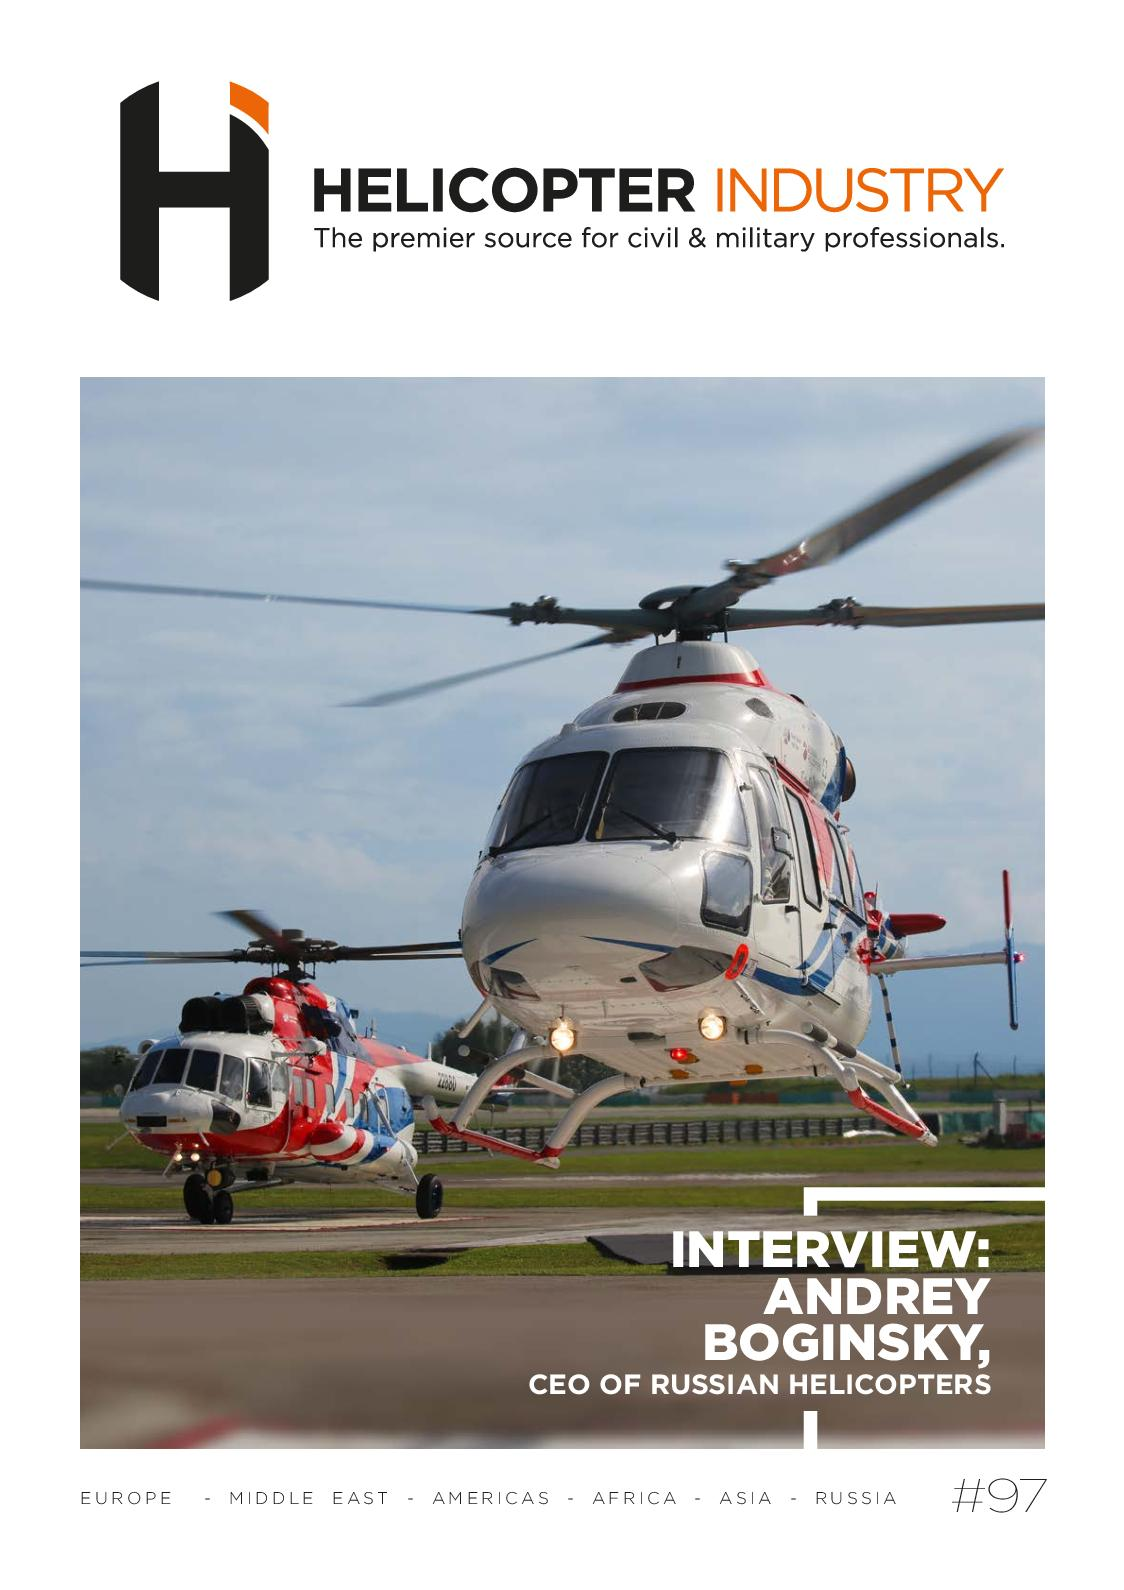 Helicopter Industry #97